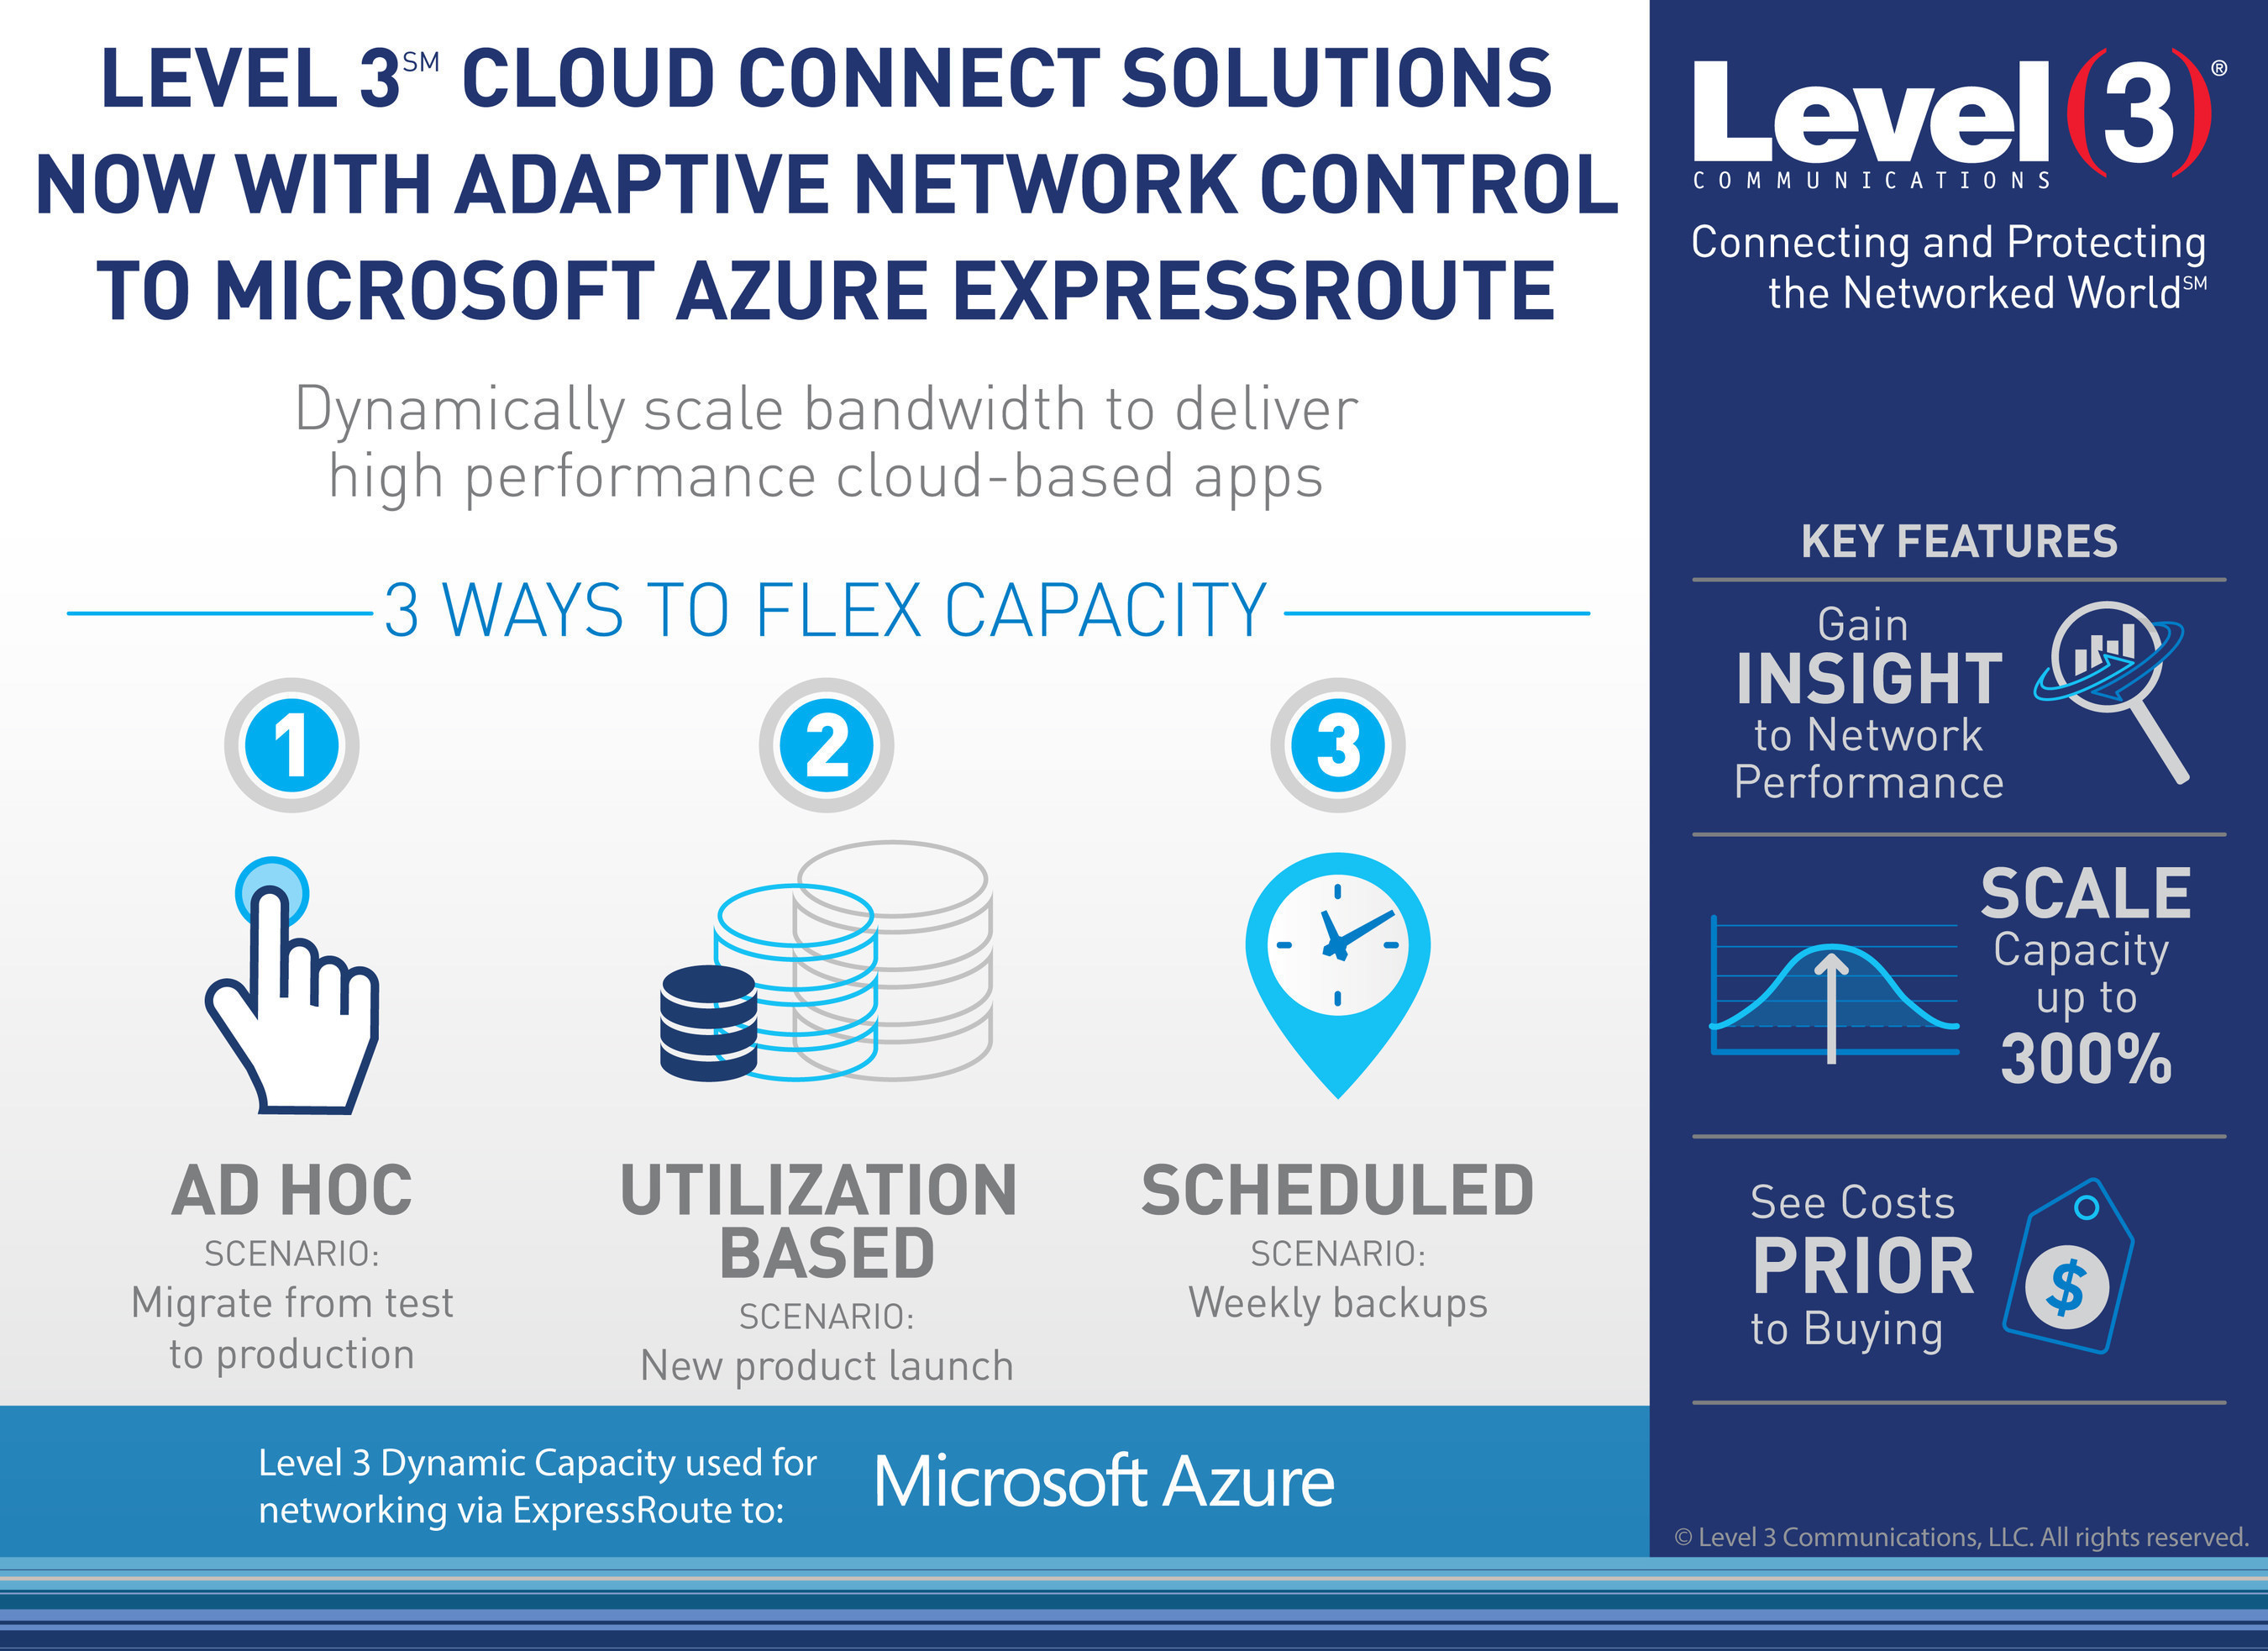 Level 3 Introduces Adaptive Network Control Solution, Allowing